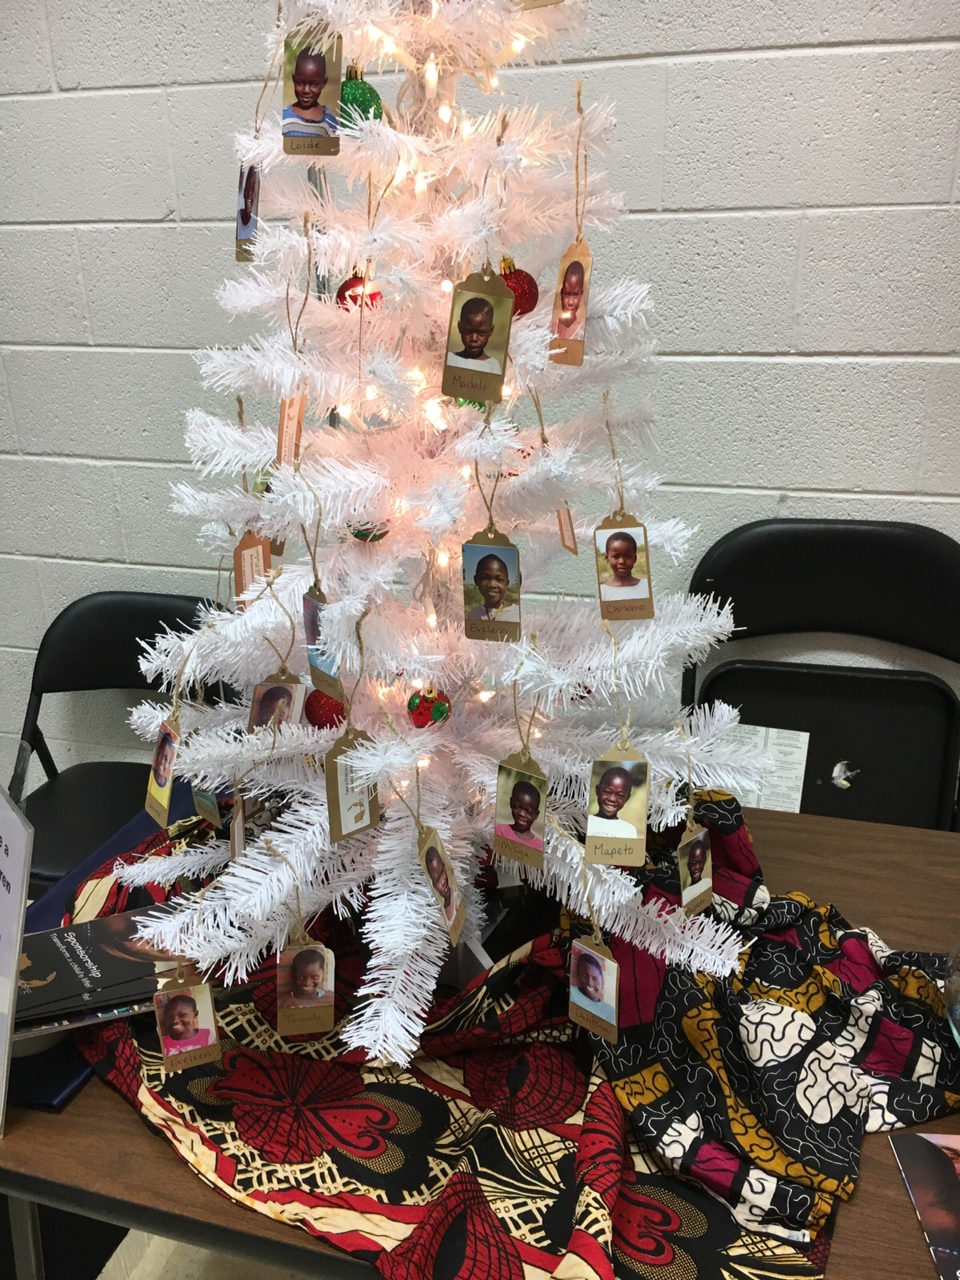 Live near Sweetwater TX? Watch for Mickenzie and her tree of kids! She has already raised $288 for #FeedMalawi with her Take a Child to Lunch tree!